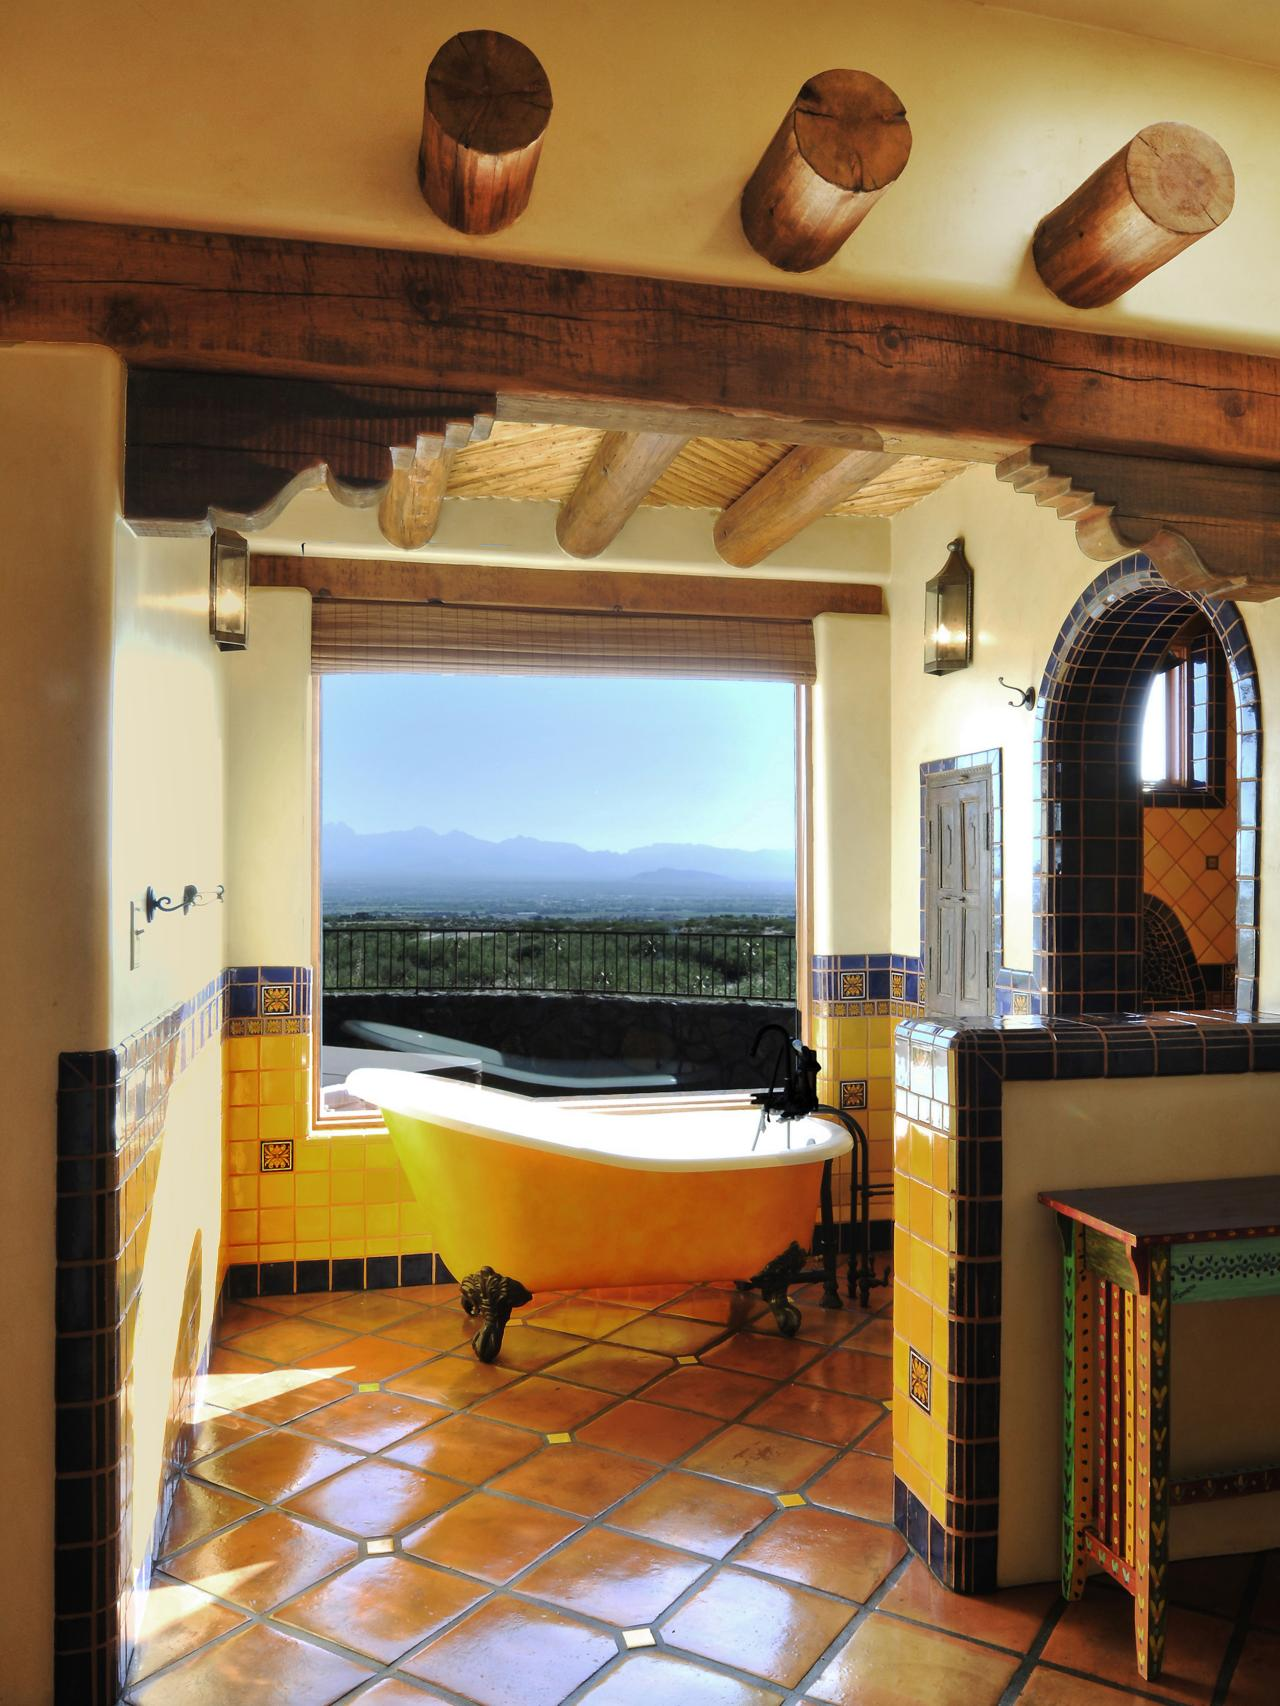 Idea Salle De Bain 25 Southwestern Bathroom Design Ideas